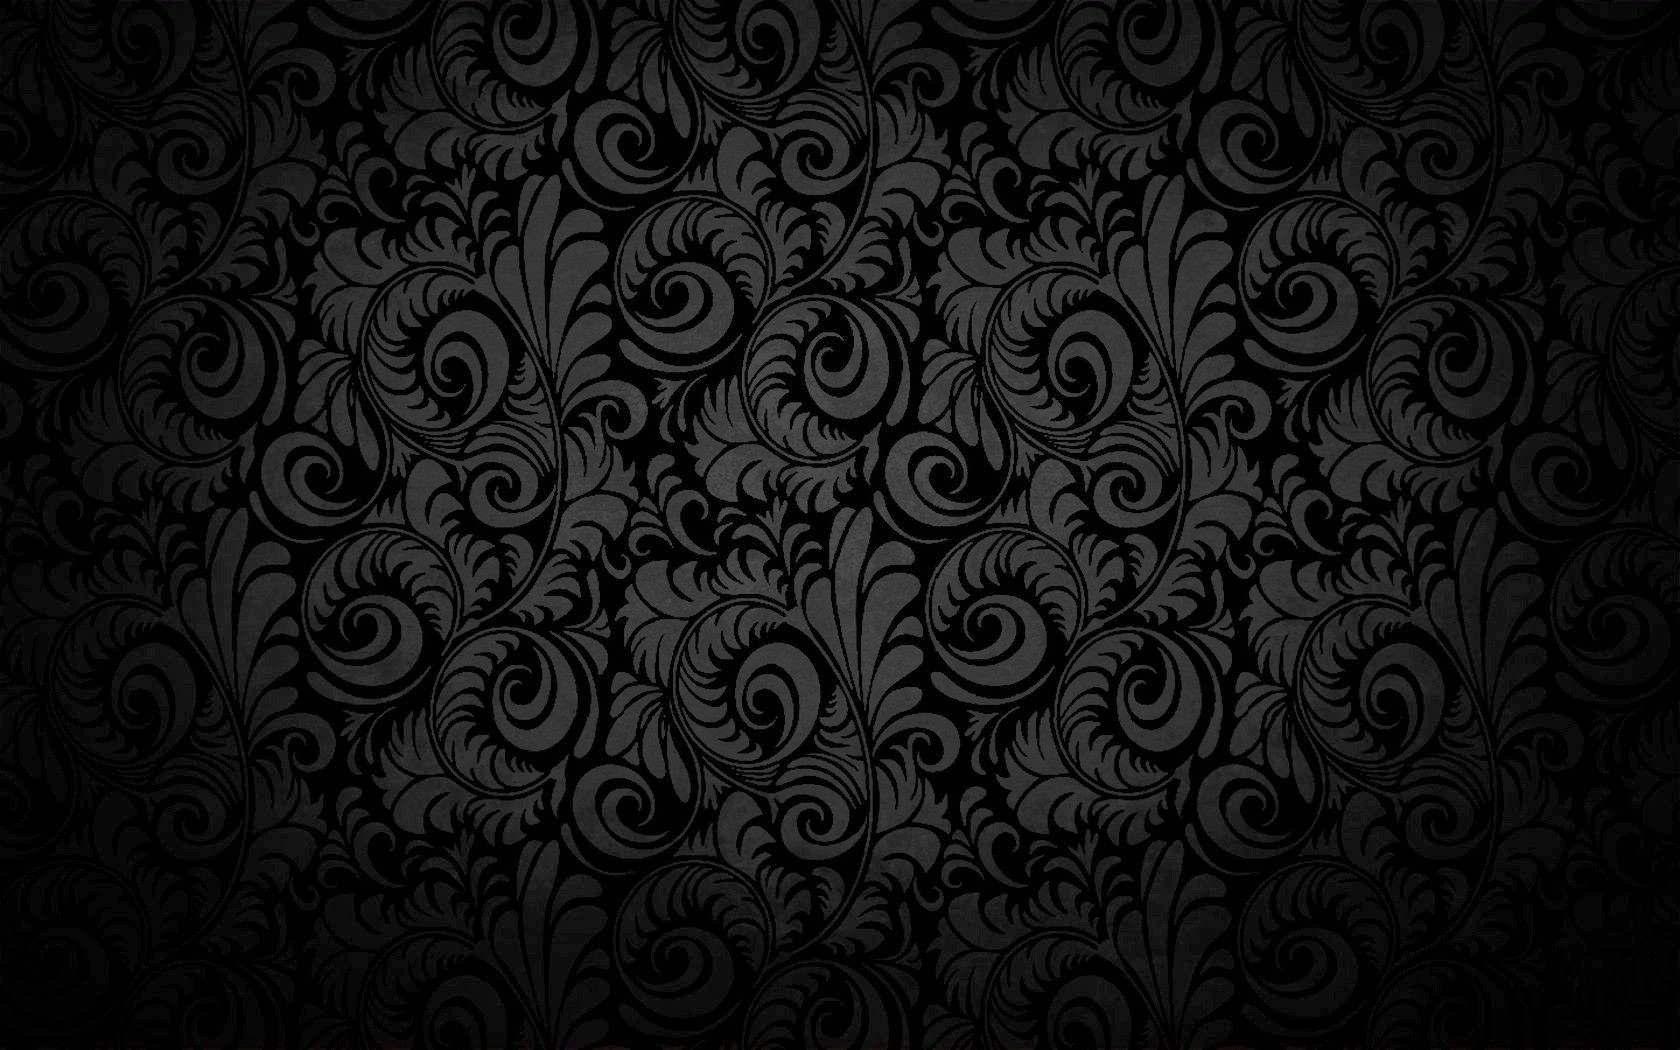 Hd Pattern Wallpapers Top Free Hd Pattern Backgrounds